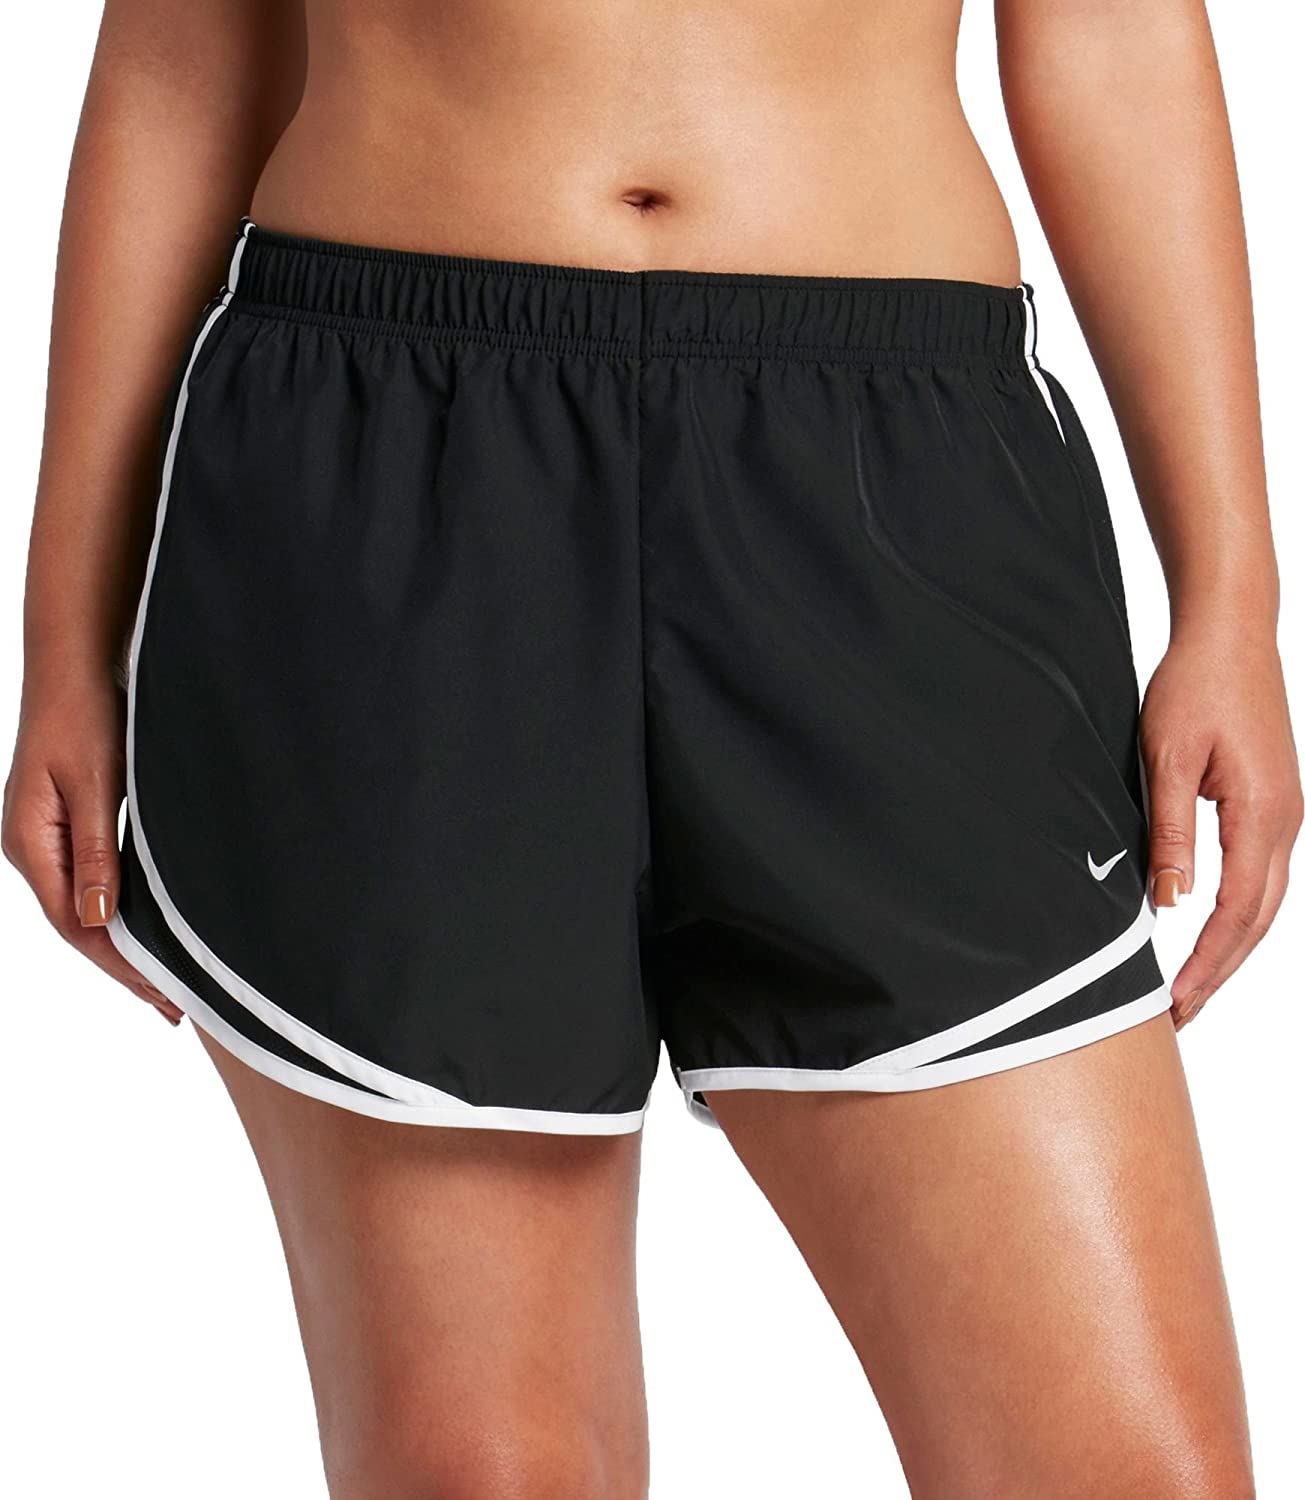 7a4b28079a8 Amazon.com   NIKE Women s Plus Size 3   Dry Tempo Running Shorts  (Black Blk White Wolf Grey